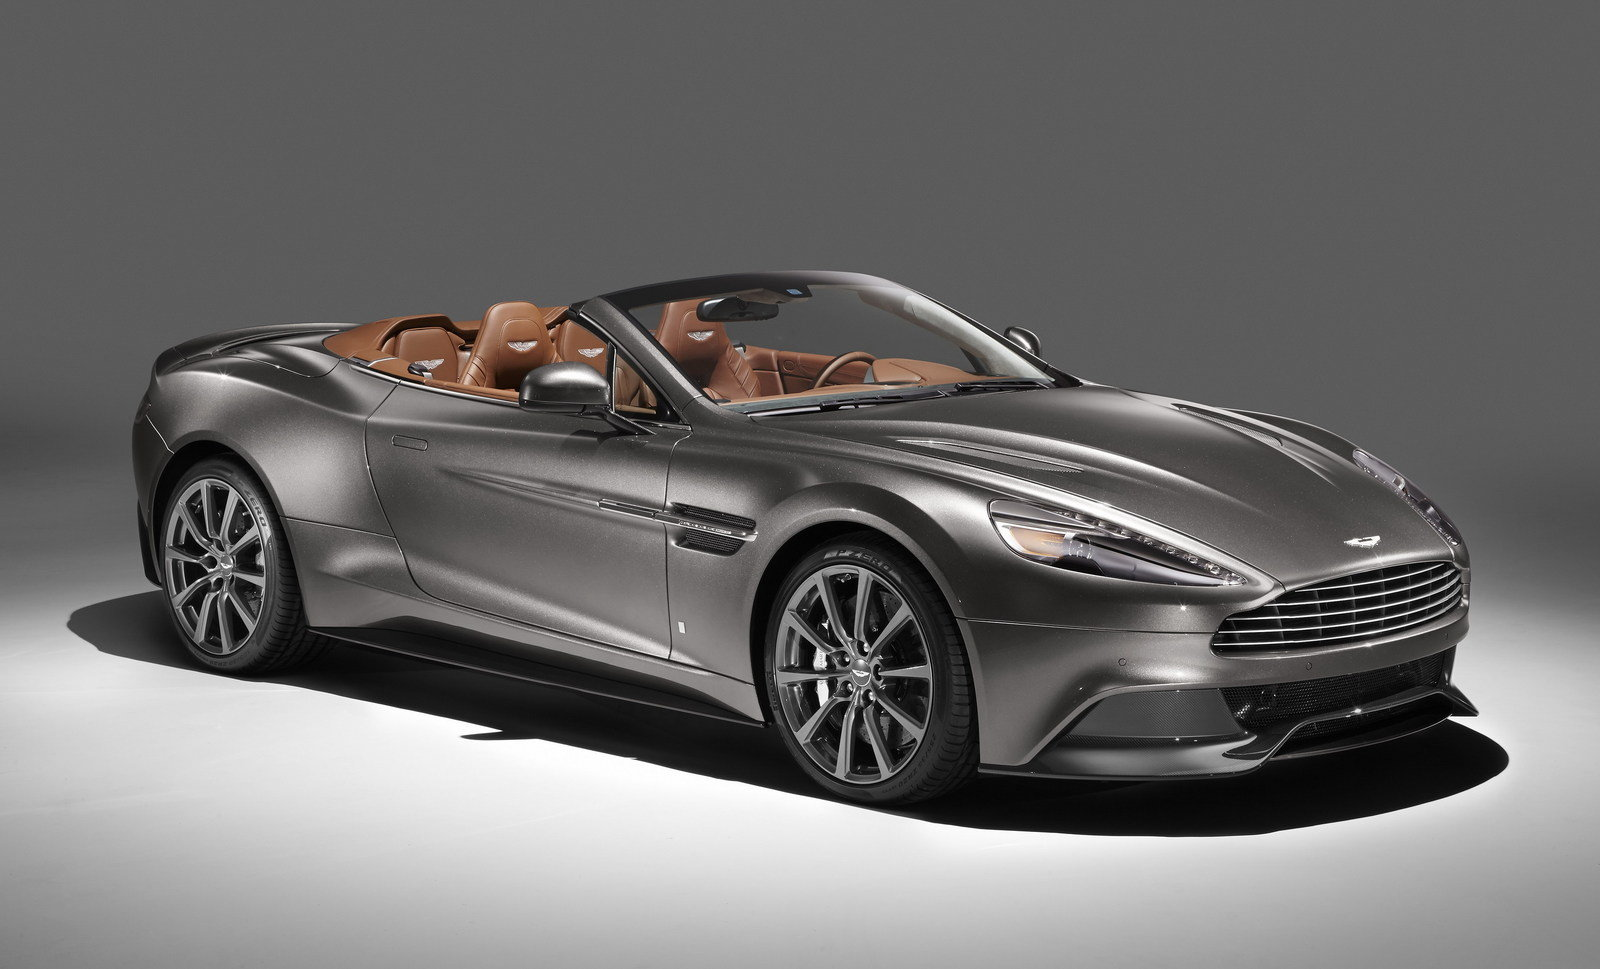 2014 aston martin vanquish volante by q dark cars wallpapers. Black Bedroom Furniture Sets. Home Design Ideas